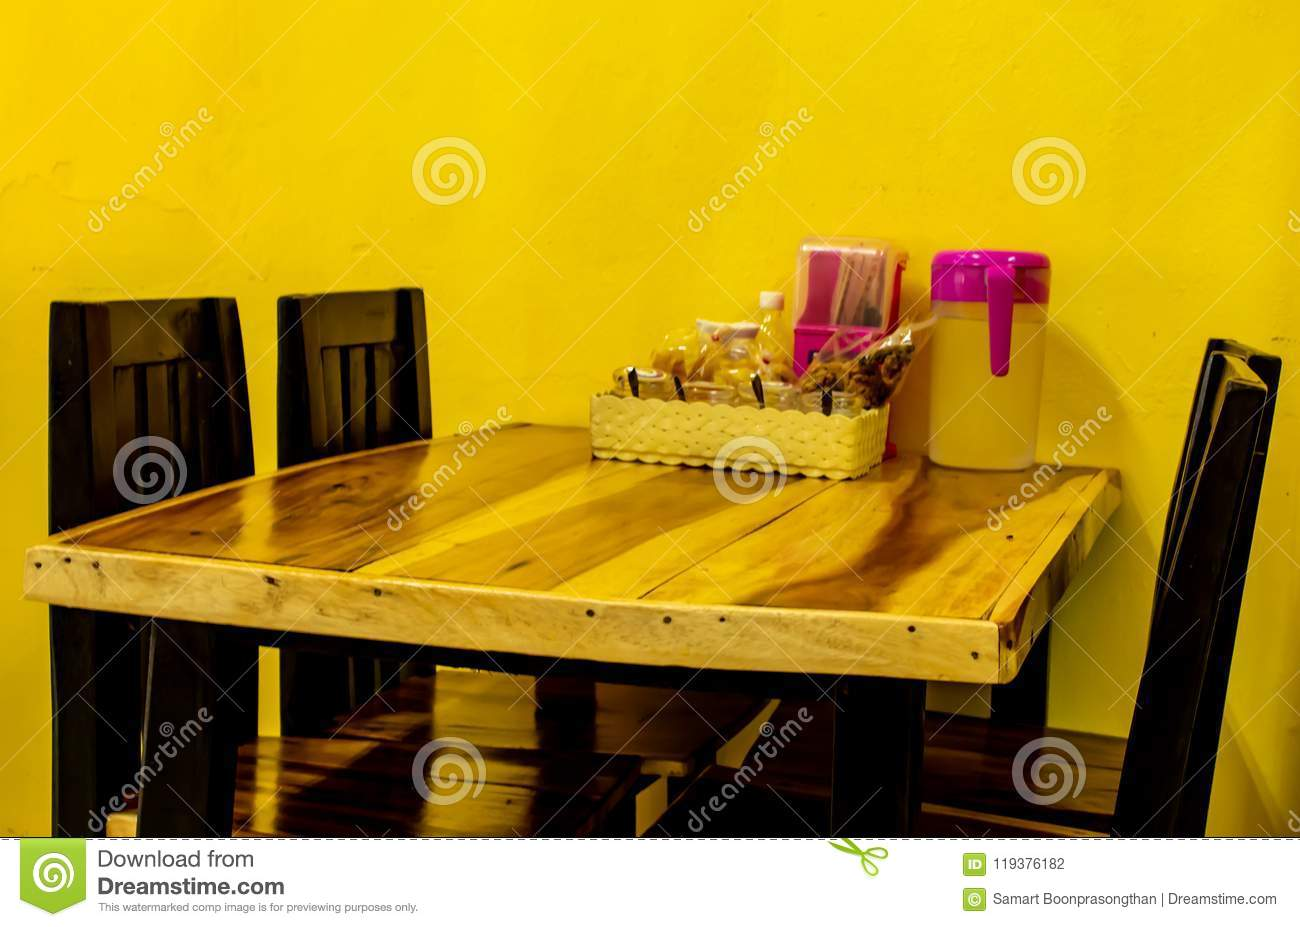 Wooden dining table In the restaurant.